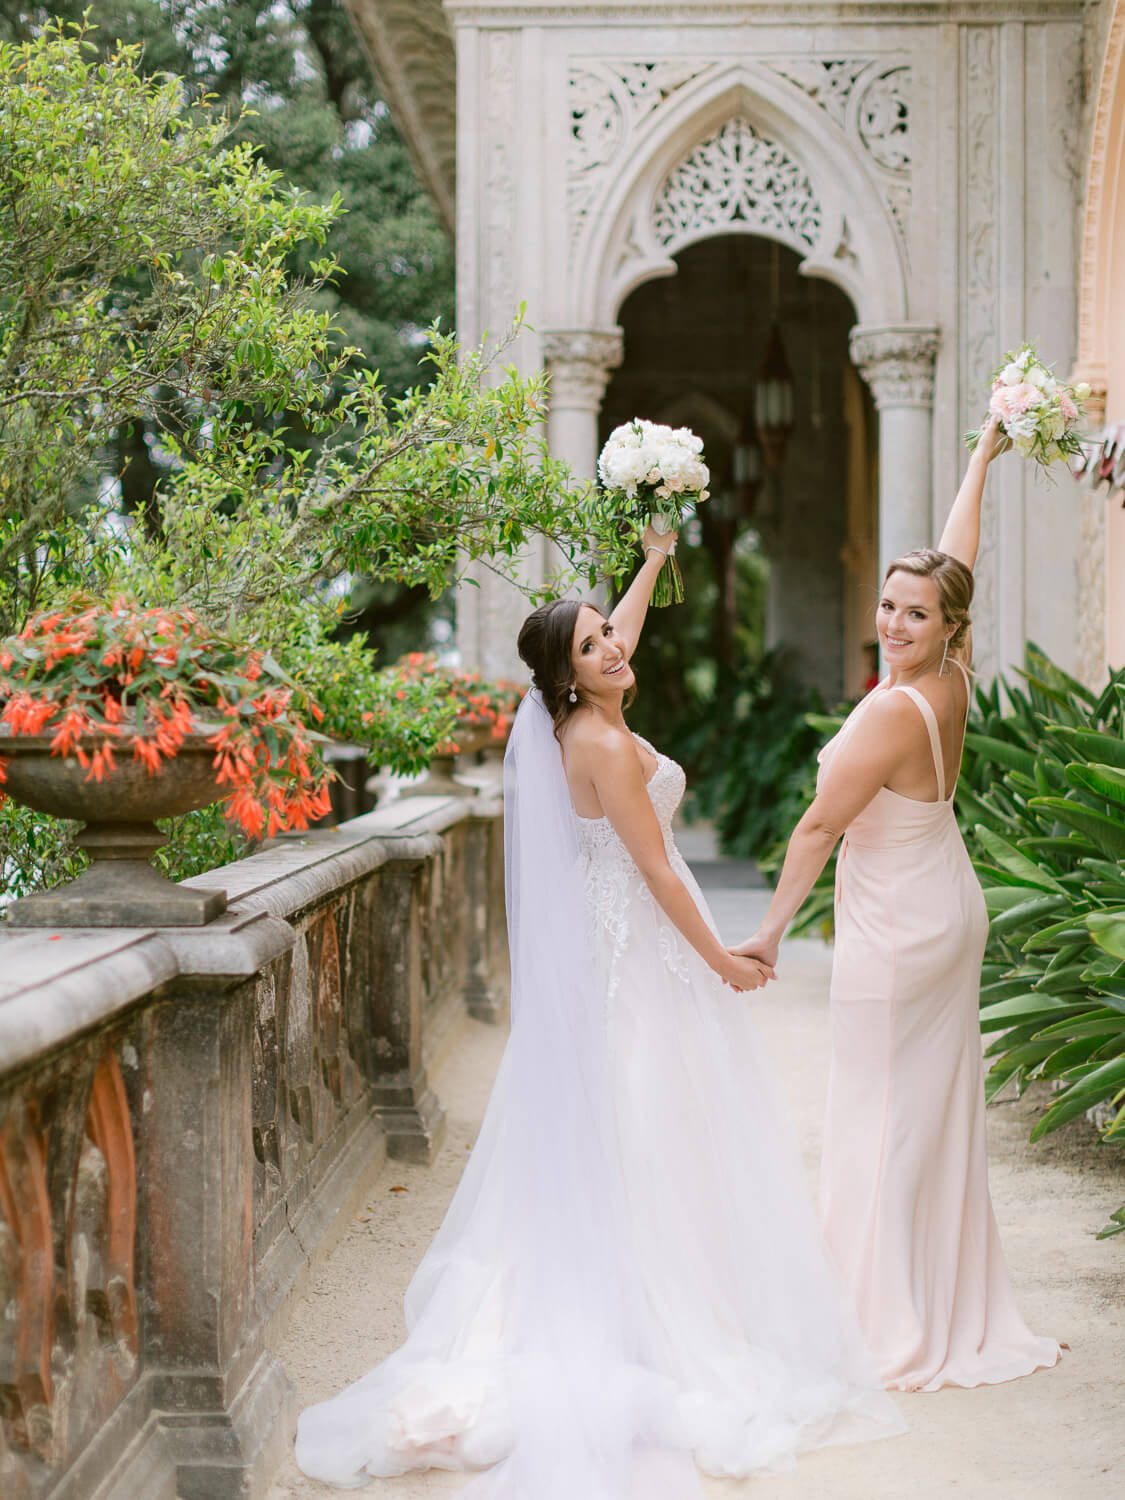 Bride and Maid-of-honour cheering with floral bouquets in Monserrate Palace Wedding by Portugal Wedding Photographer